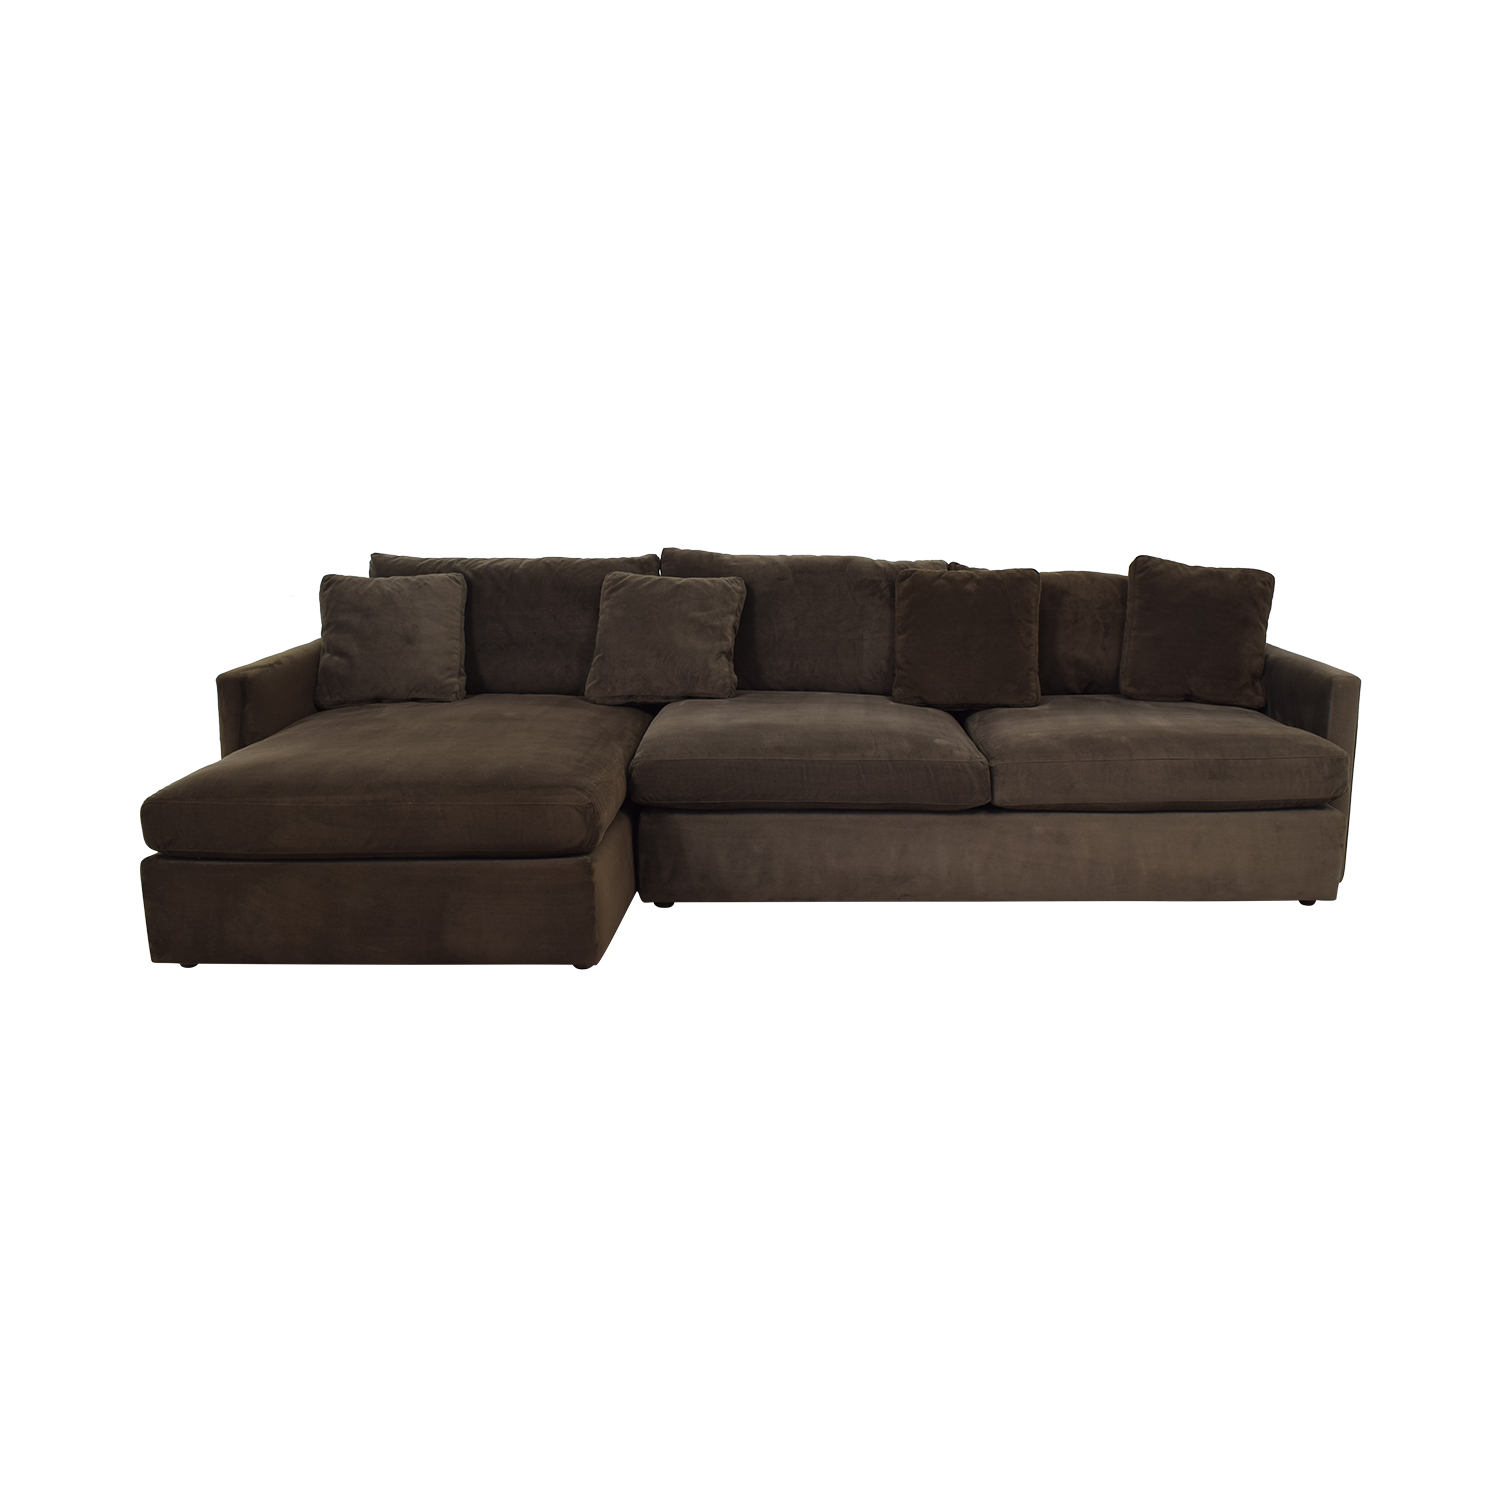 Crate & Barrel Brown Chaise Sectional sale